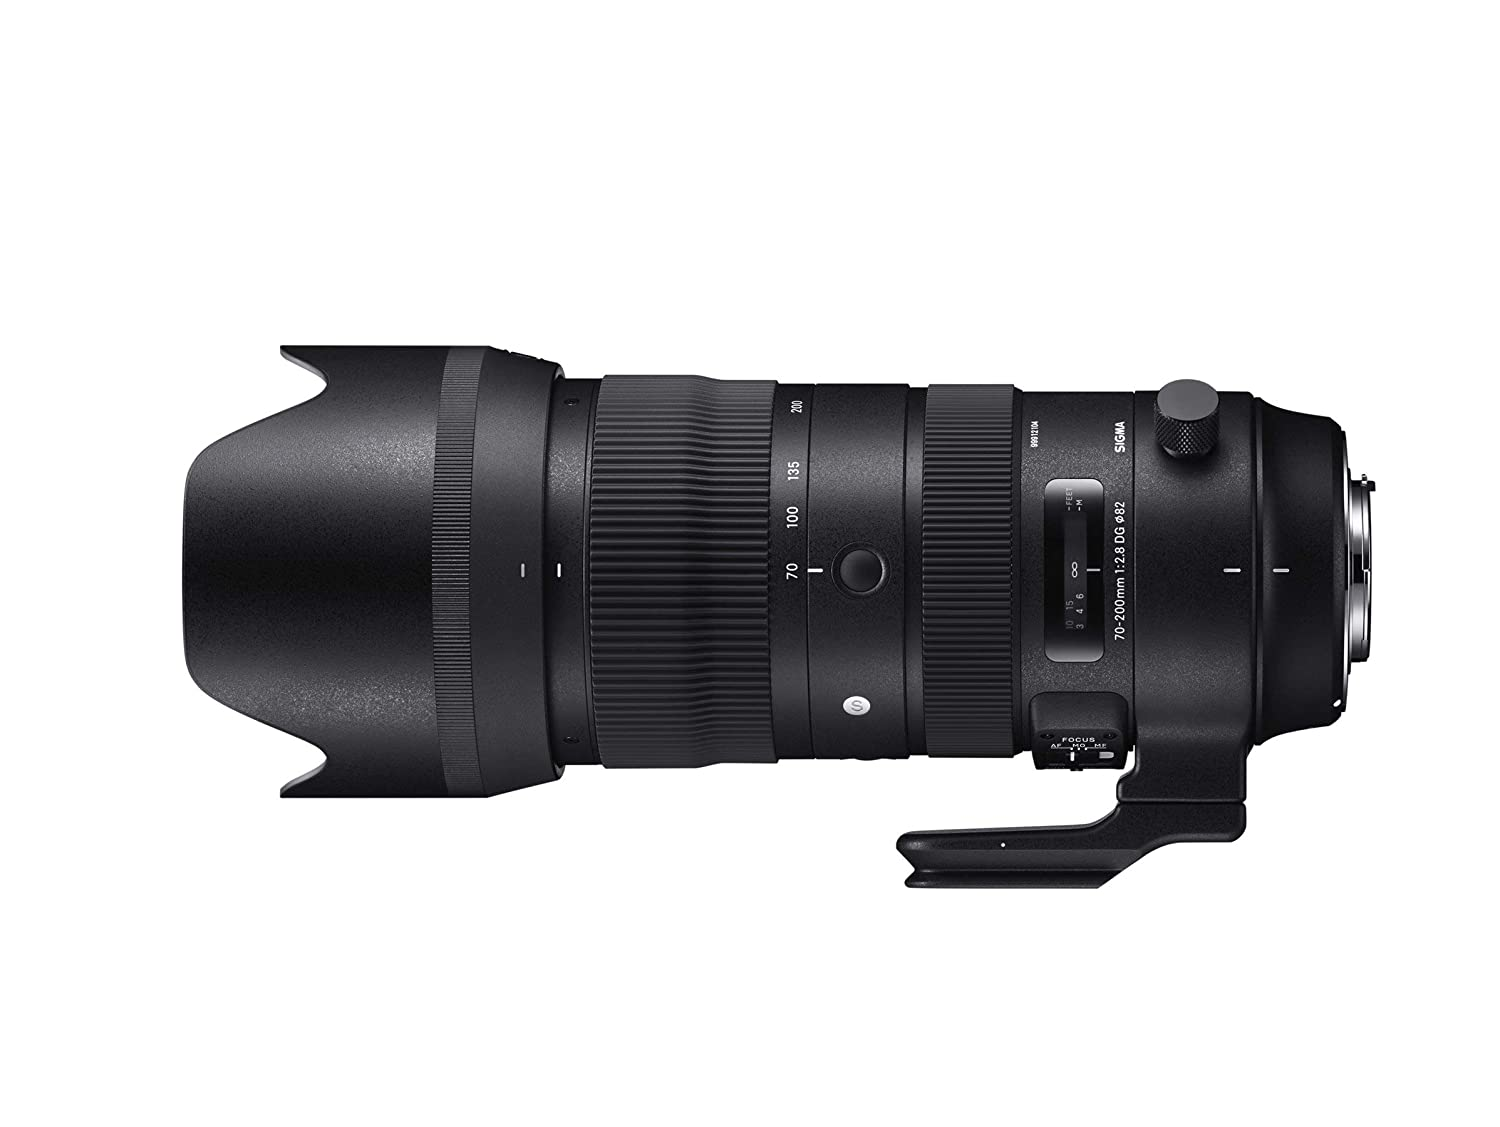 Sigma 70-200mm F/2.8 DG OS HSM Sports Lenses For Camera